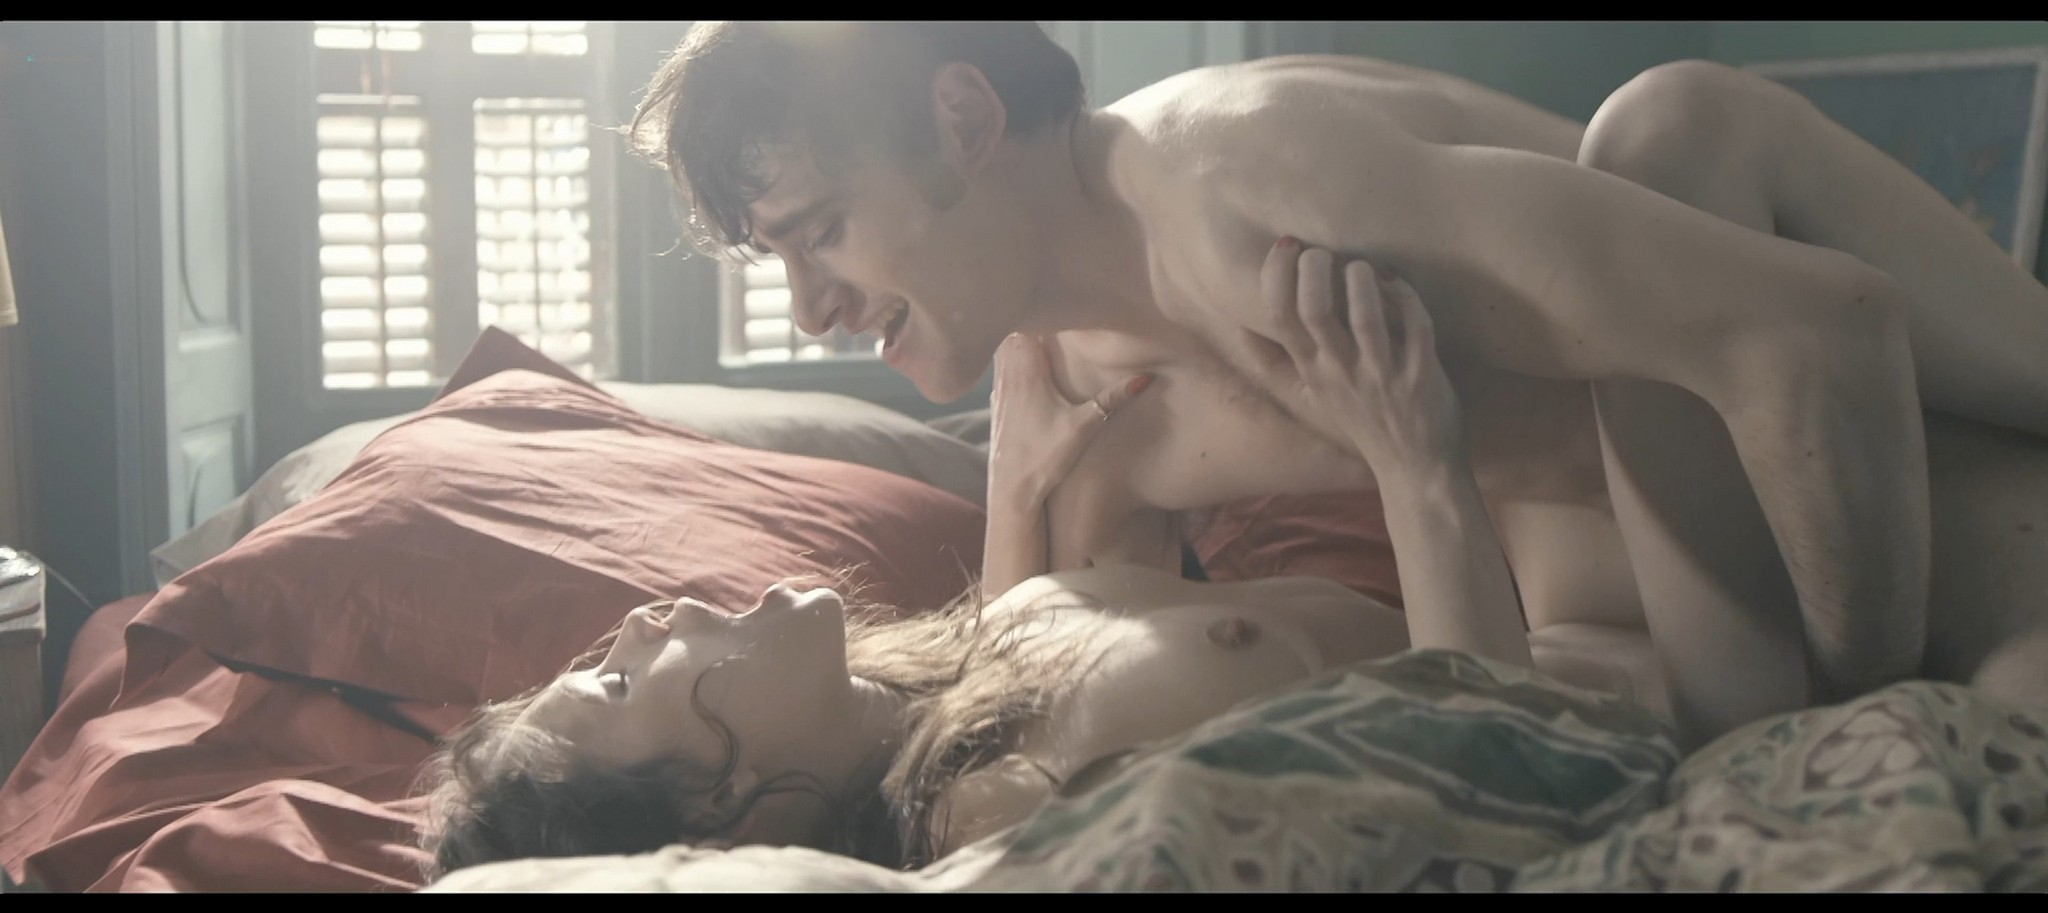 Astrid Berges Frisbey nude and hot sex The Sex of the Angels ES 2012 1080p BluRay REMUX 6